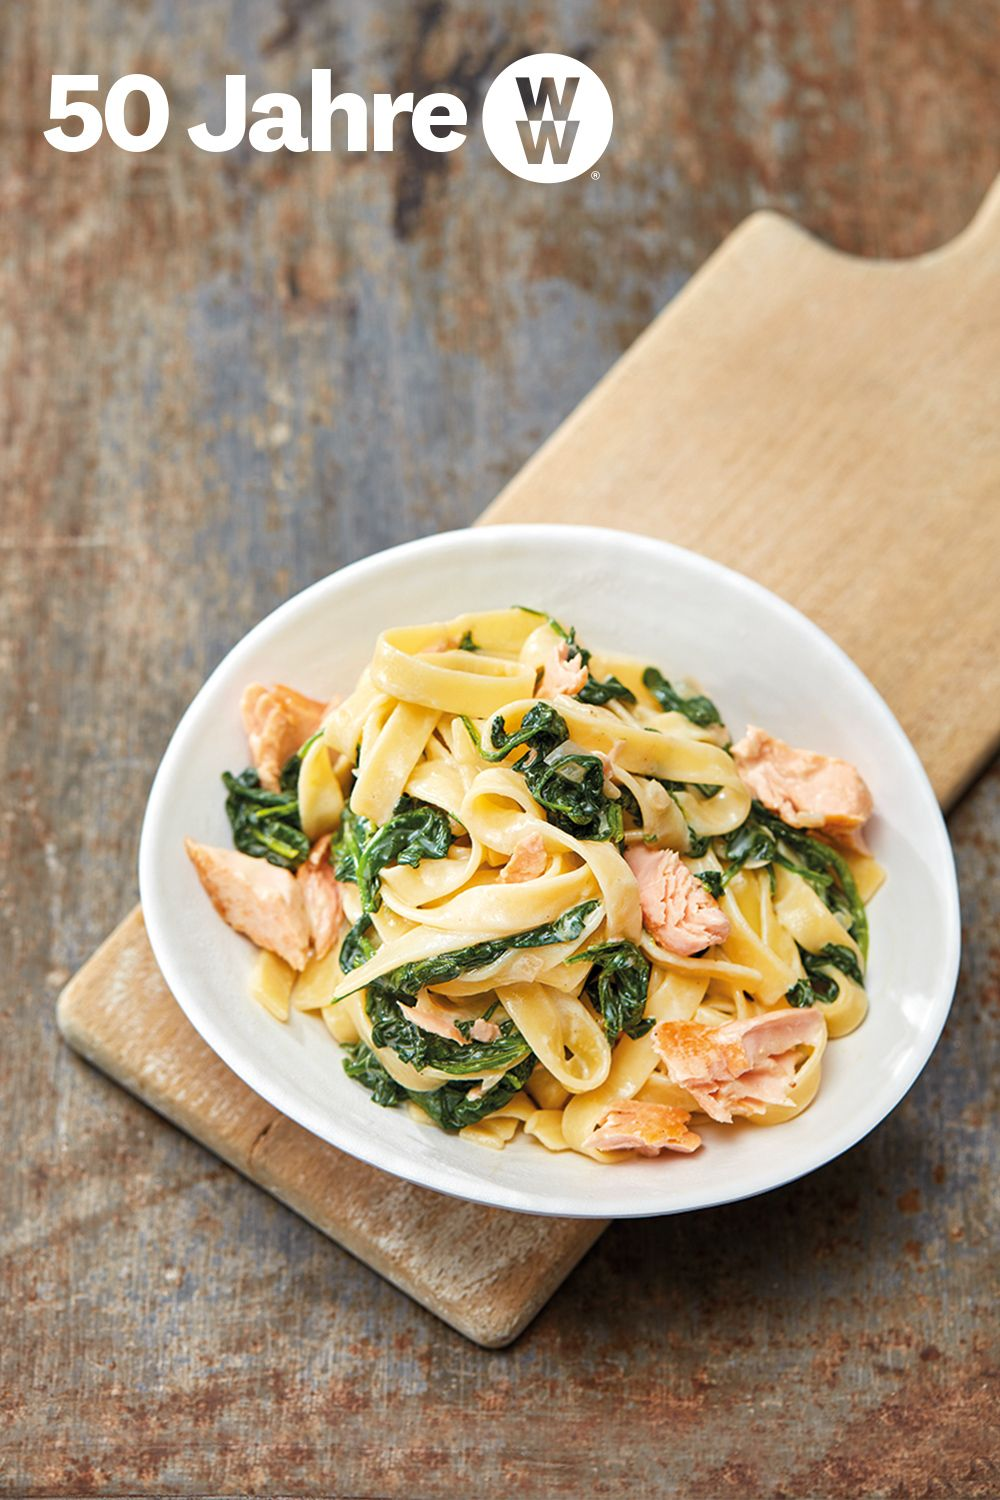 Photo of Tagliatelle with salmon and spinach